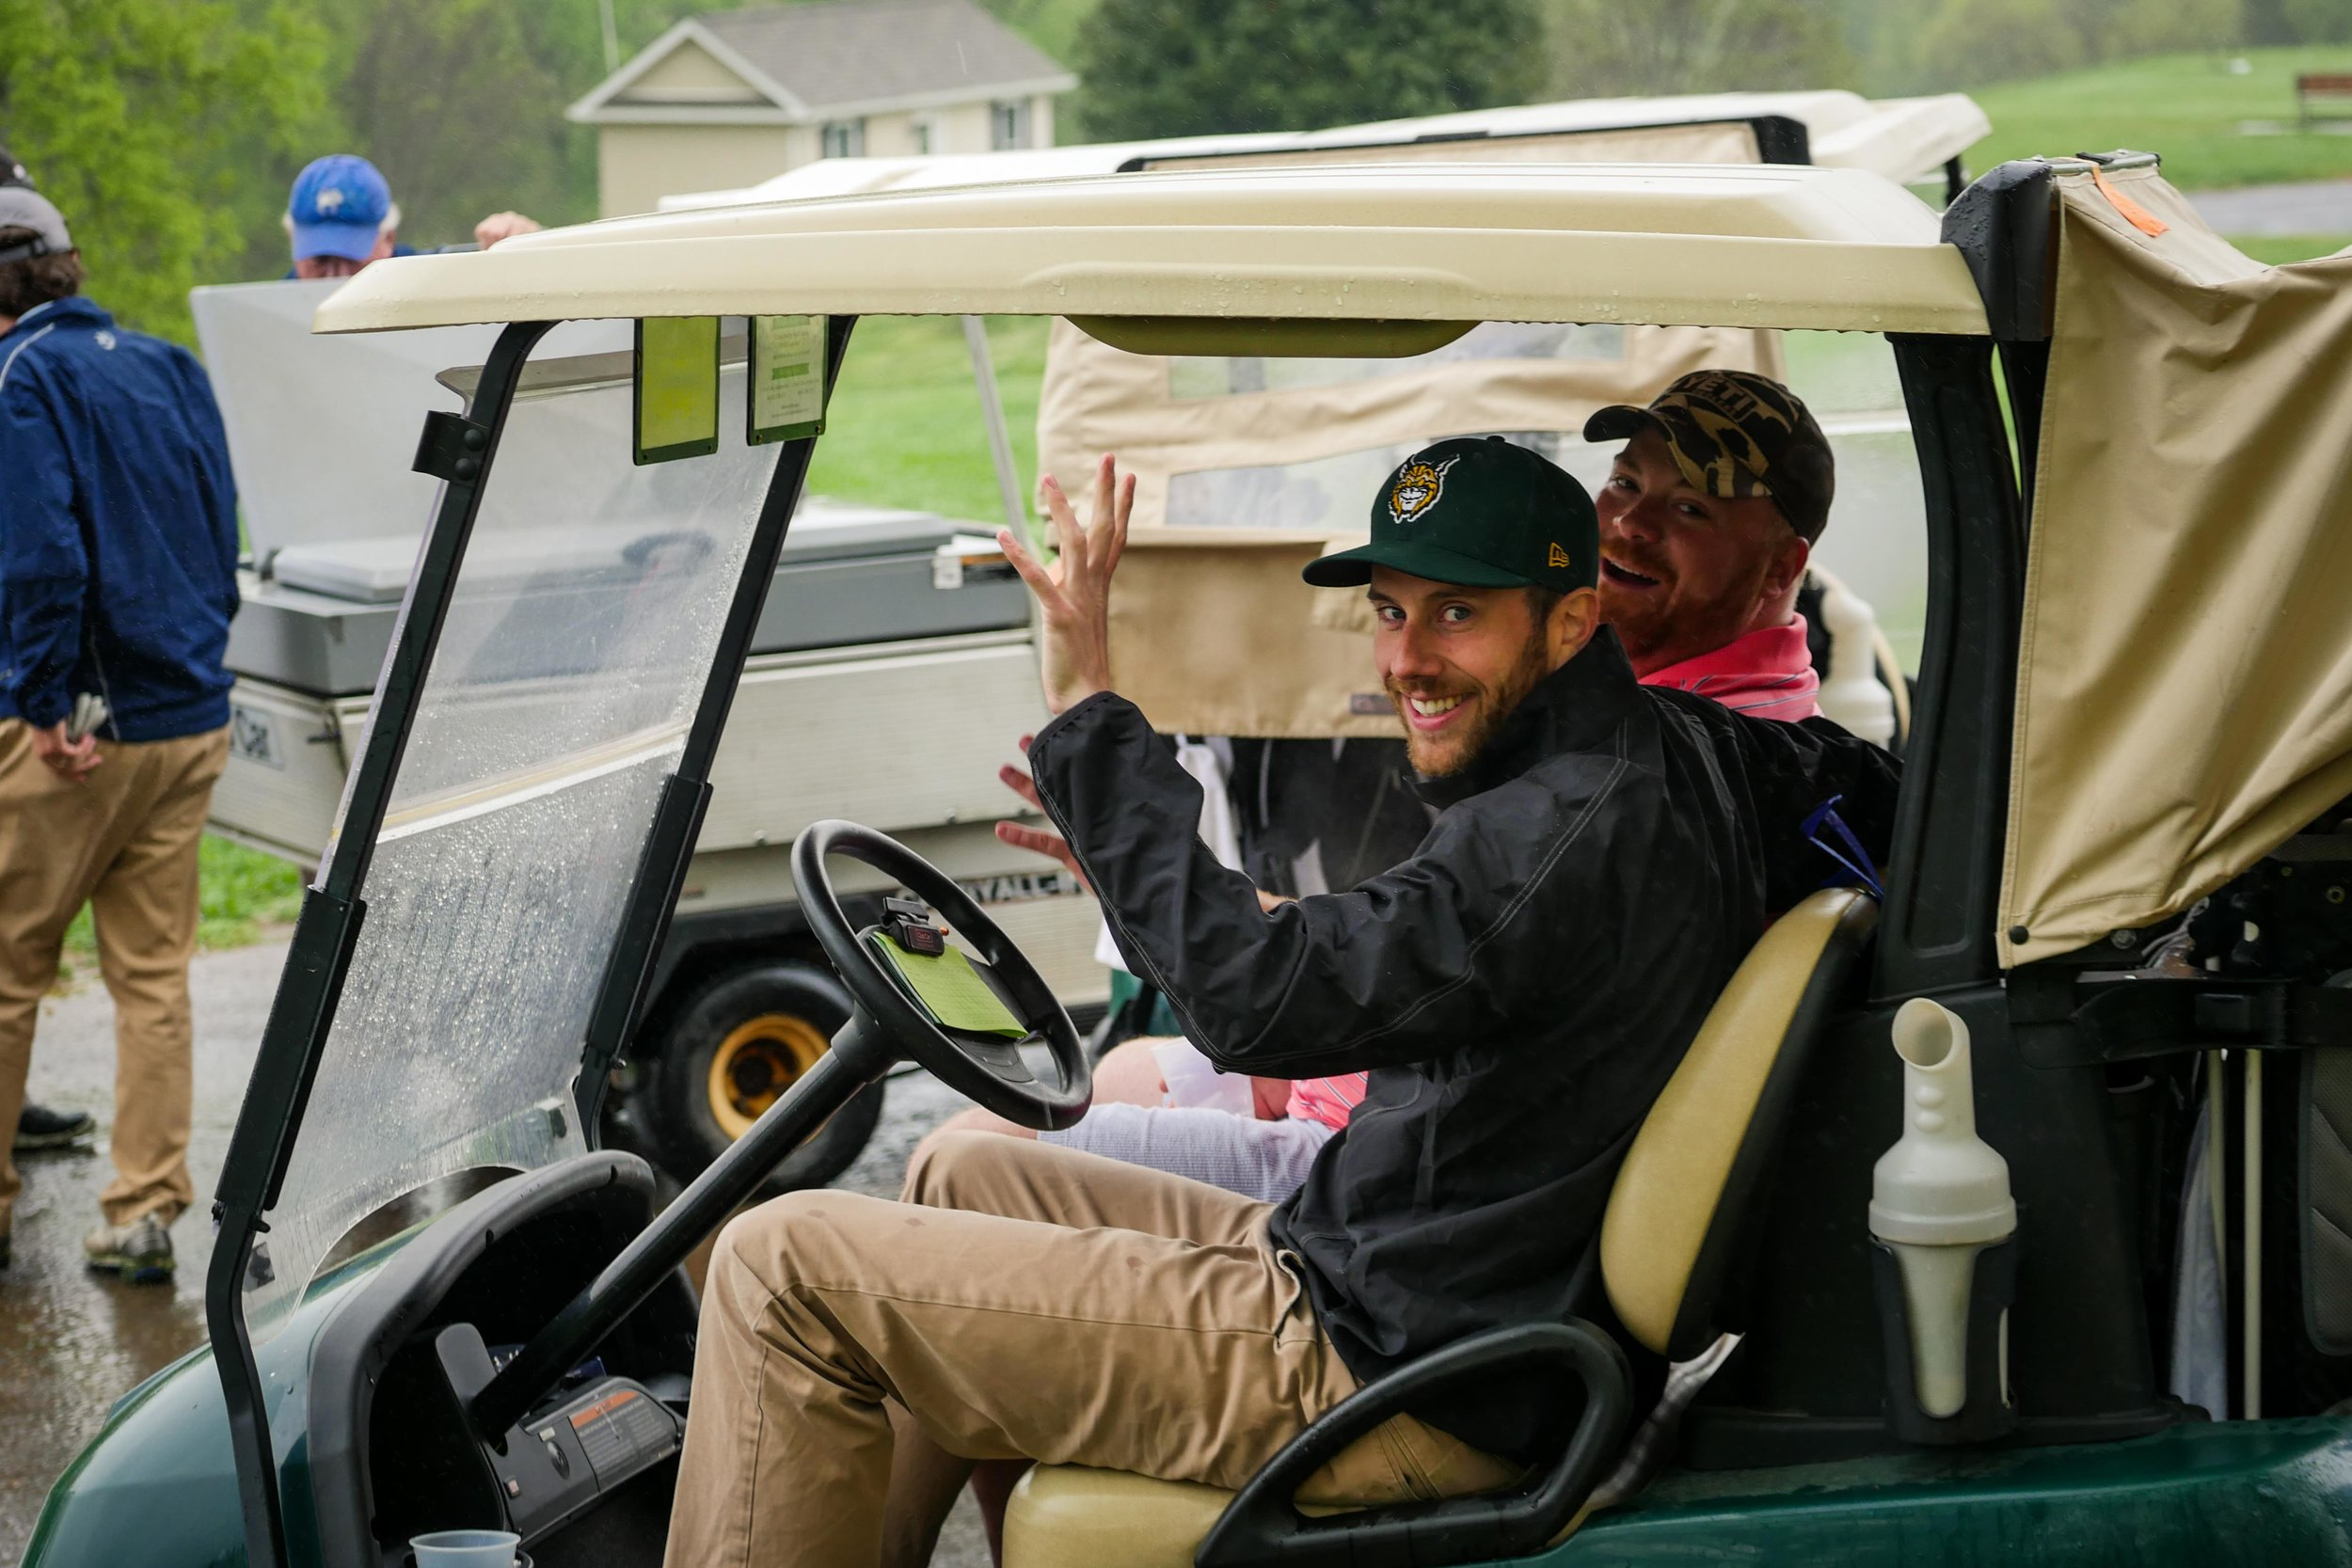 Member James Peery participated & helped acquire tournament sponsors in 2017 that helped raise $36,000 for non-profits in Lynchburg.